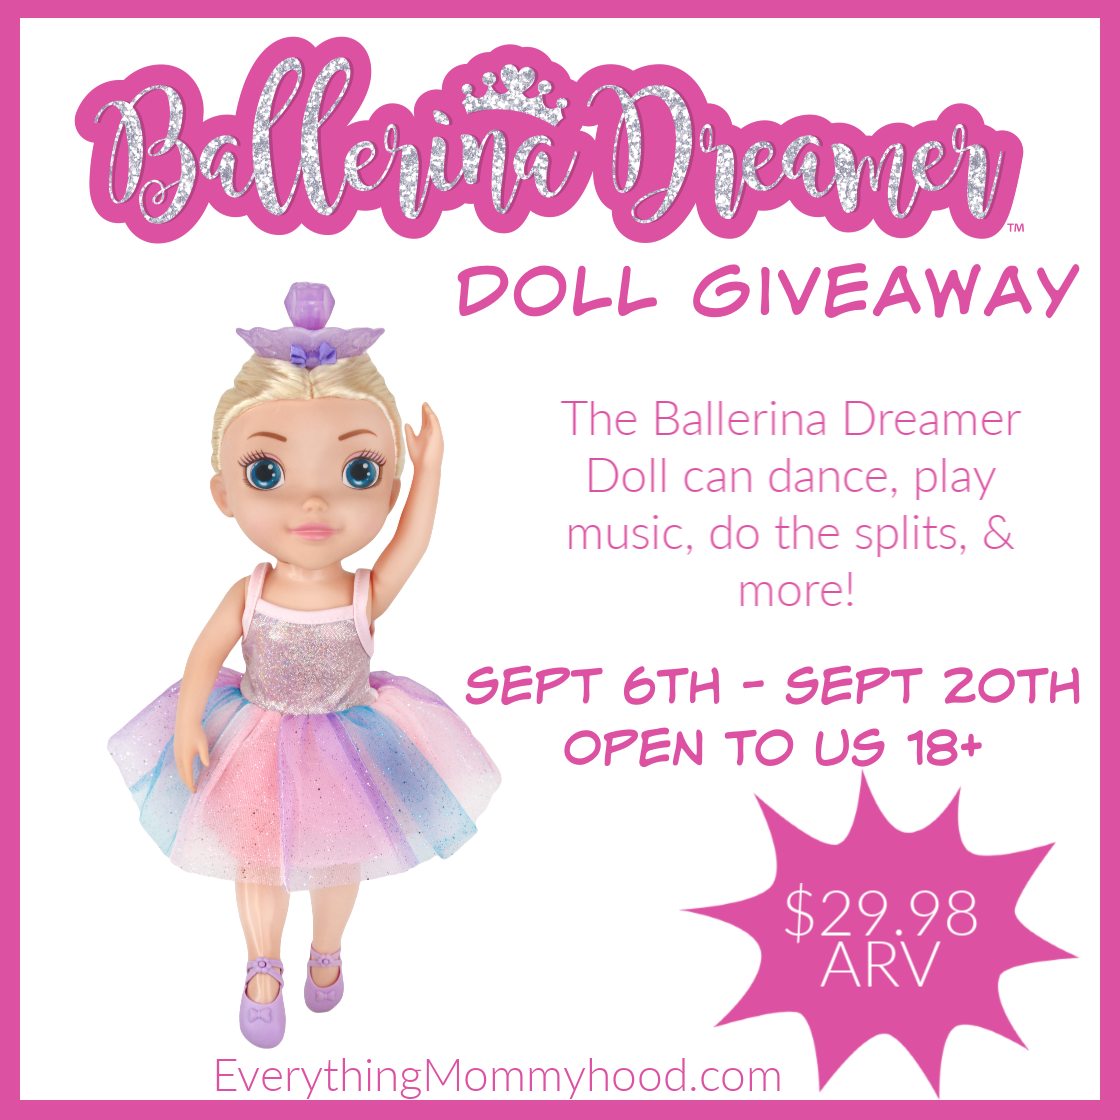 #Win a Ballerina Dreamer Dancing Doll! US, ends 9/20 #KVBallerina